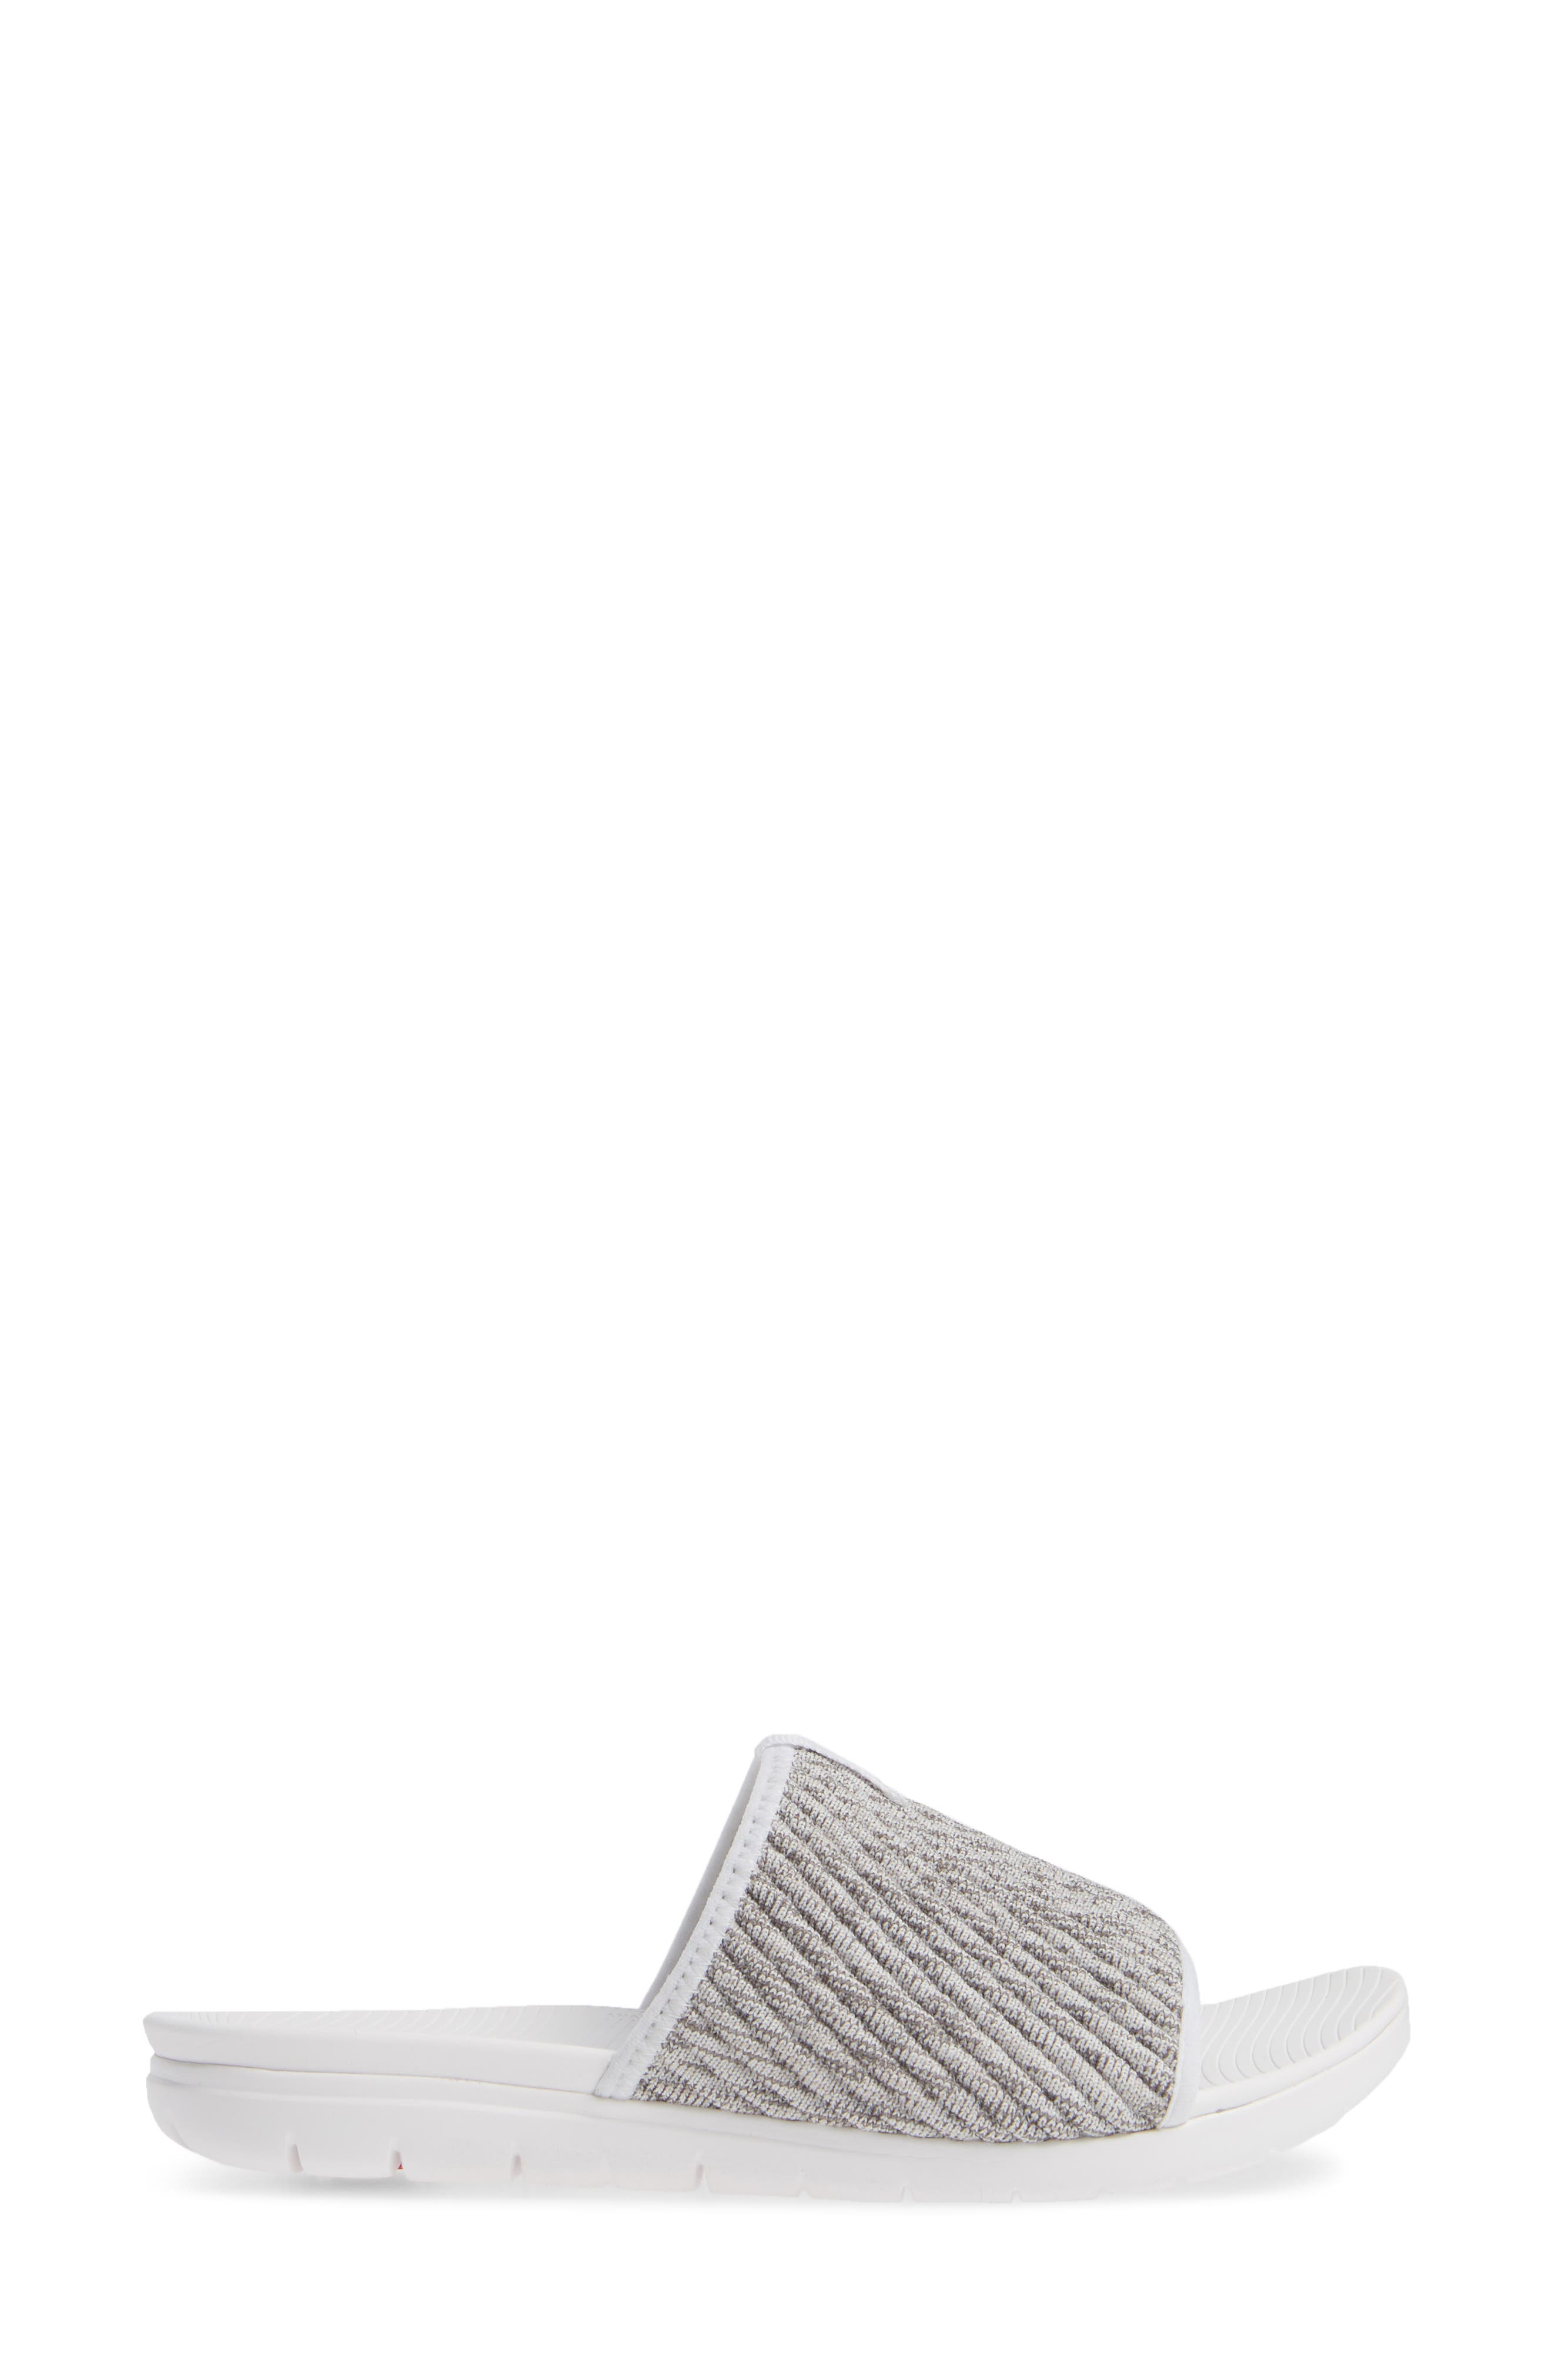 FITFLOP, Artknit Slide Sandal, Alternate thumbnail 3, color, URBAN WHITE MIX FABRIC